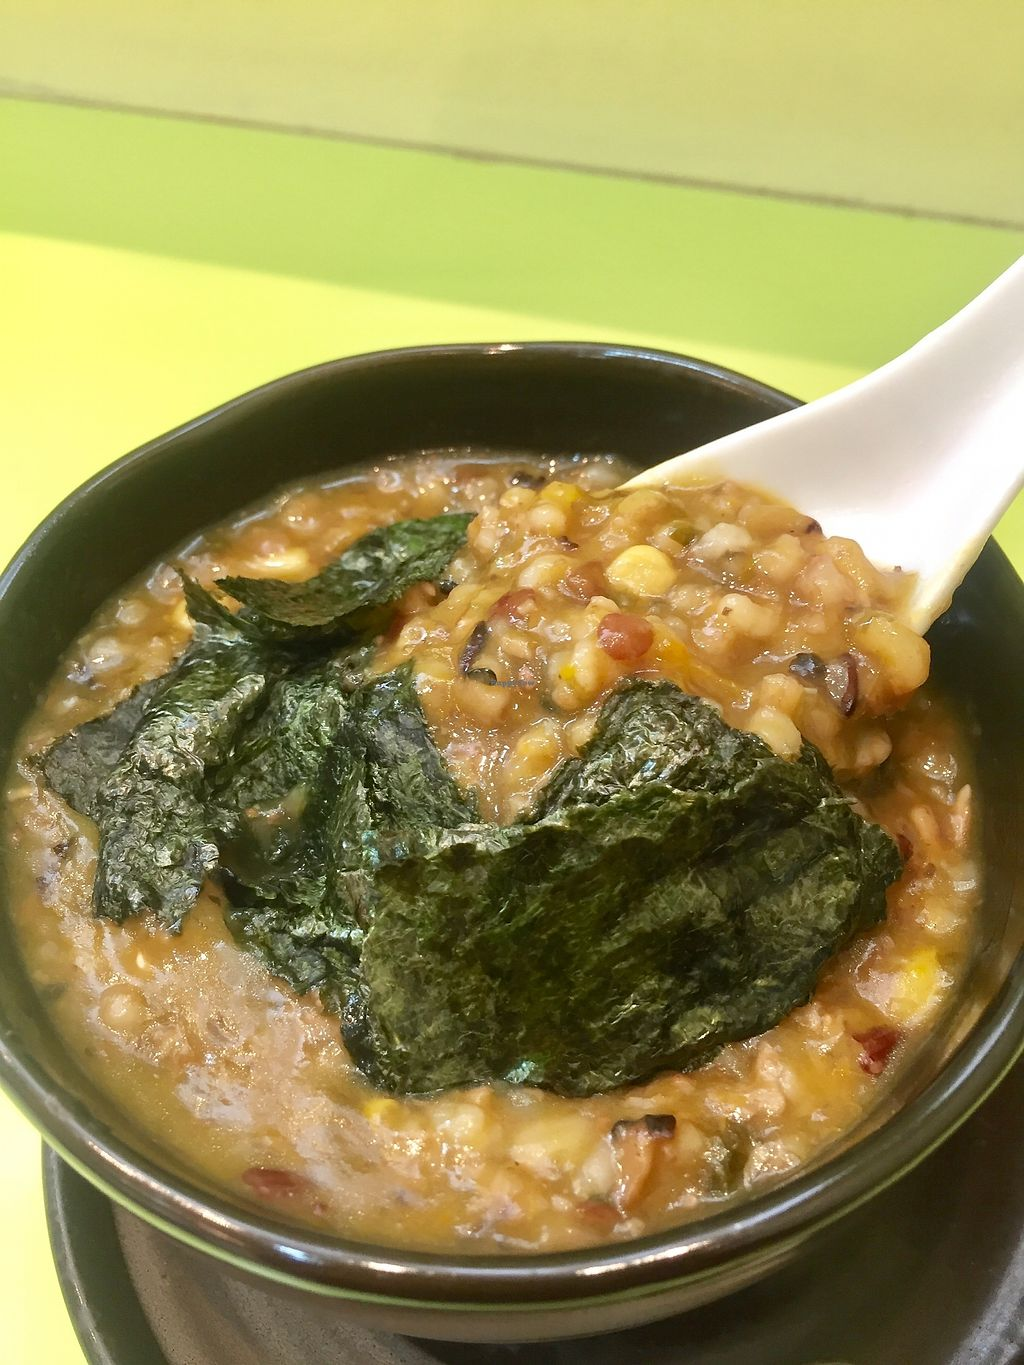 """Photo of Tracy Juice Culture - Fortune Centre  by <a href=""""/members/profile/lindyhan"""">lindyhan</a> <br/>Wild rice congee. Ingredients: sweet corn, mushrooms, wolf berries, seaweed. $4. Very small bowl. Not enough for a meal. Perhaps a snack.  <br/> July 29, 2017  - <a href='/contact/abuse/image/21091/286137'>Report</a>"""